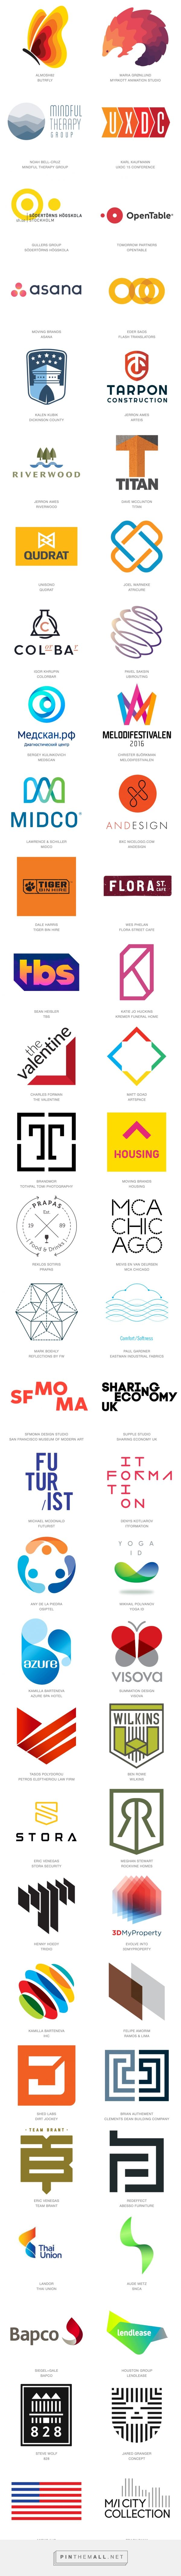 2016 Logo Trends | LogoLounge: Ombré, Circles, Half and Half, Linked, Stimming…